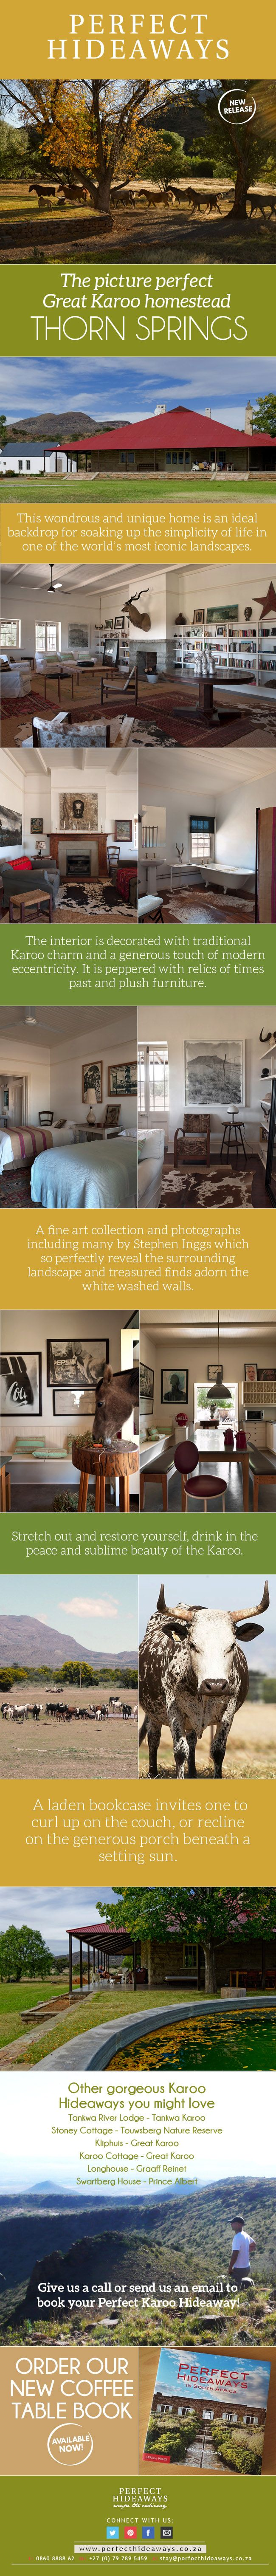 https://www.pinterest.com/perfecthide/weekly-mailers/ Beneath the branches of the sweeping willows, the expansive reach of the Karoo sky lies Thorn Springs farm, the picture perfect Great Karoo homestead.